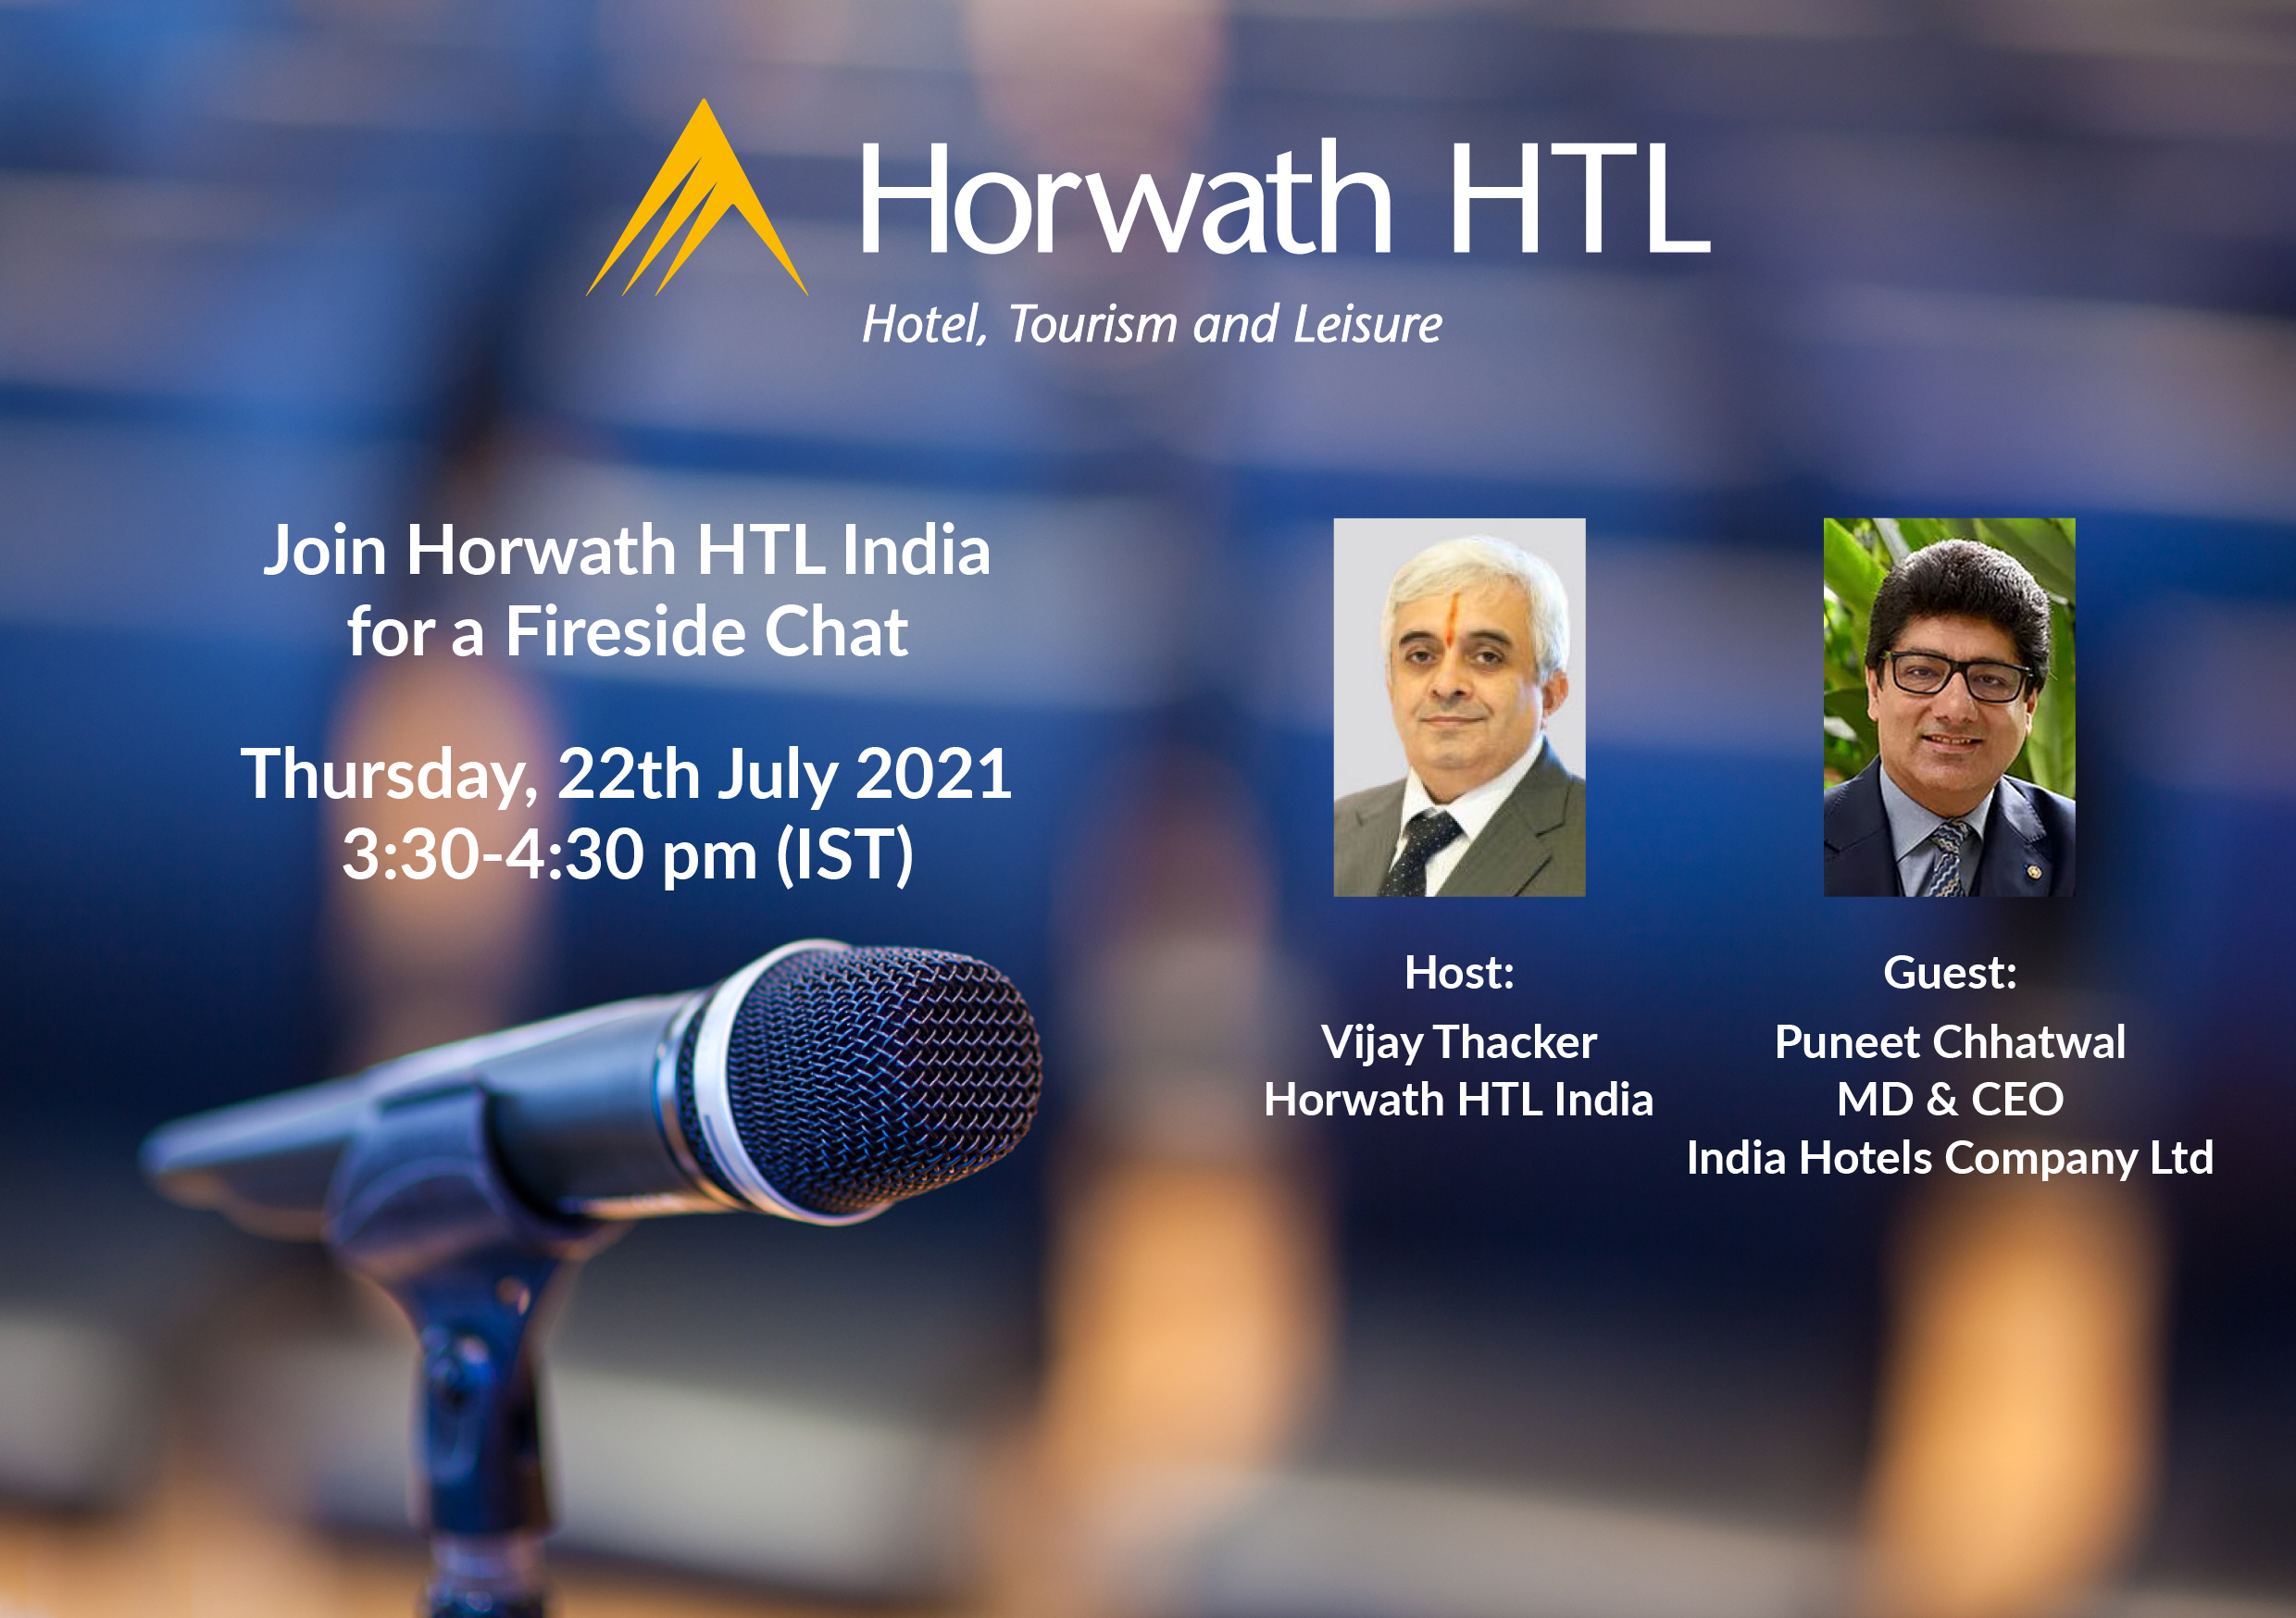 Fireside Chat with Puneet Chhatwal